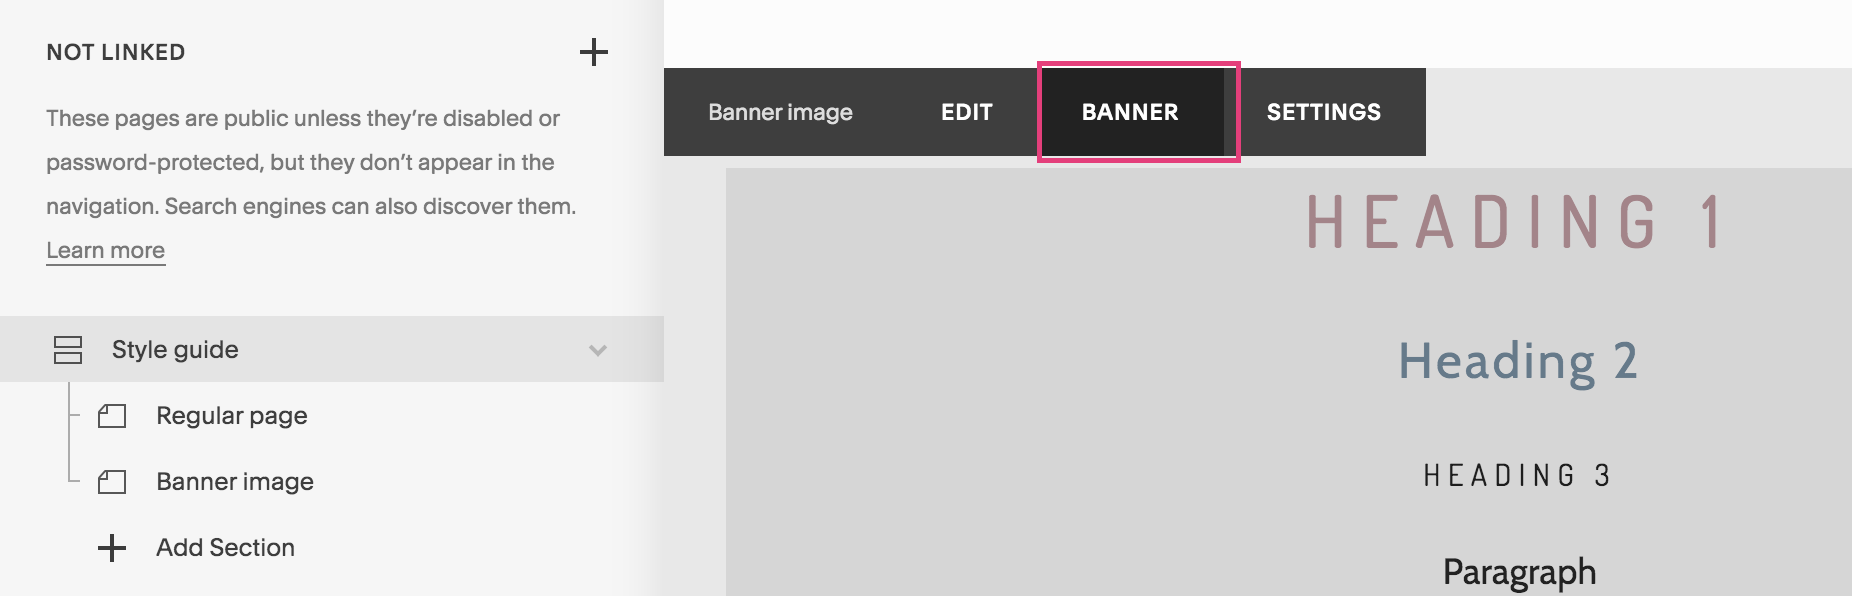 How to Create a Style Guide Inside Squarespace 10.png